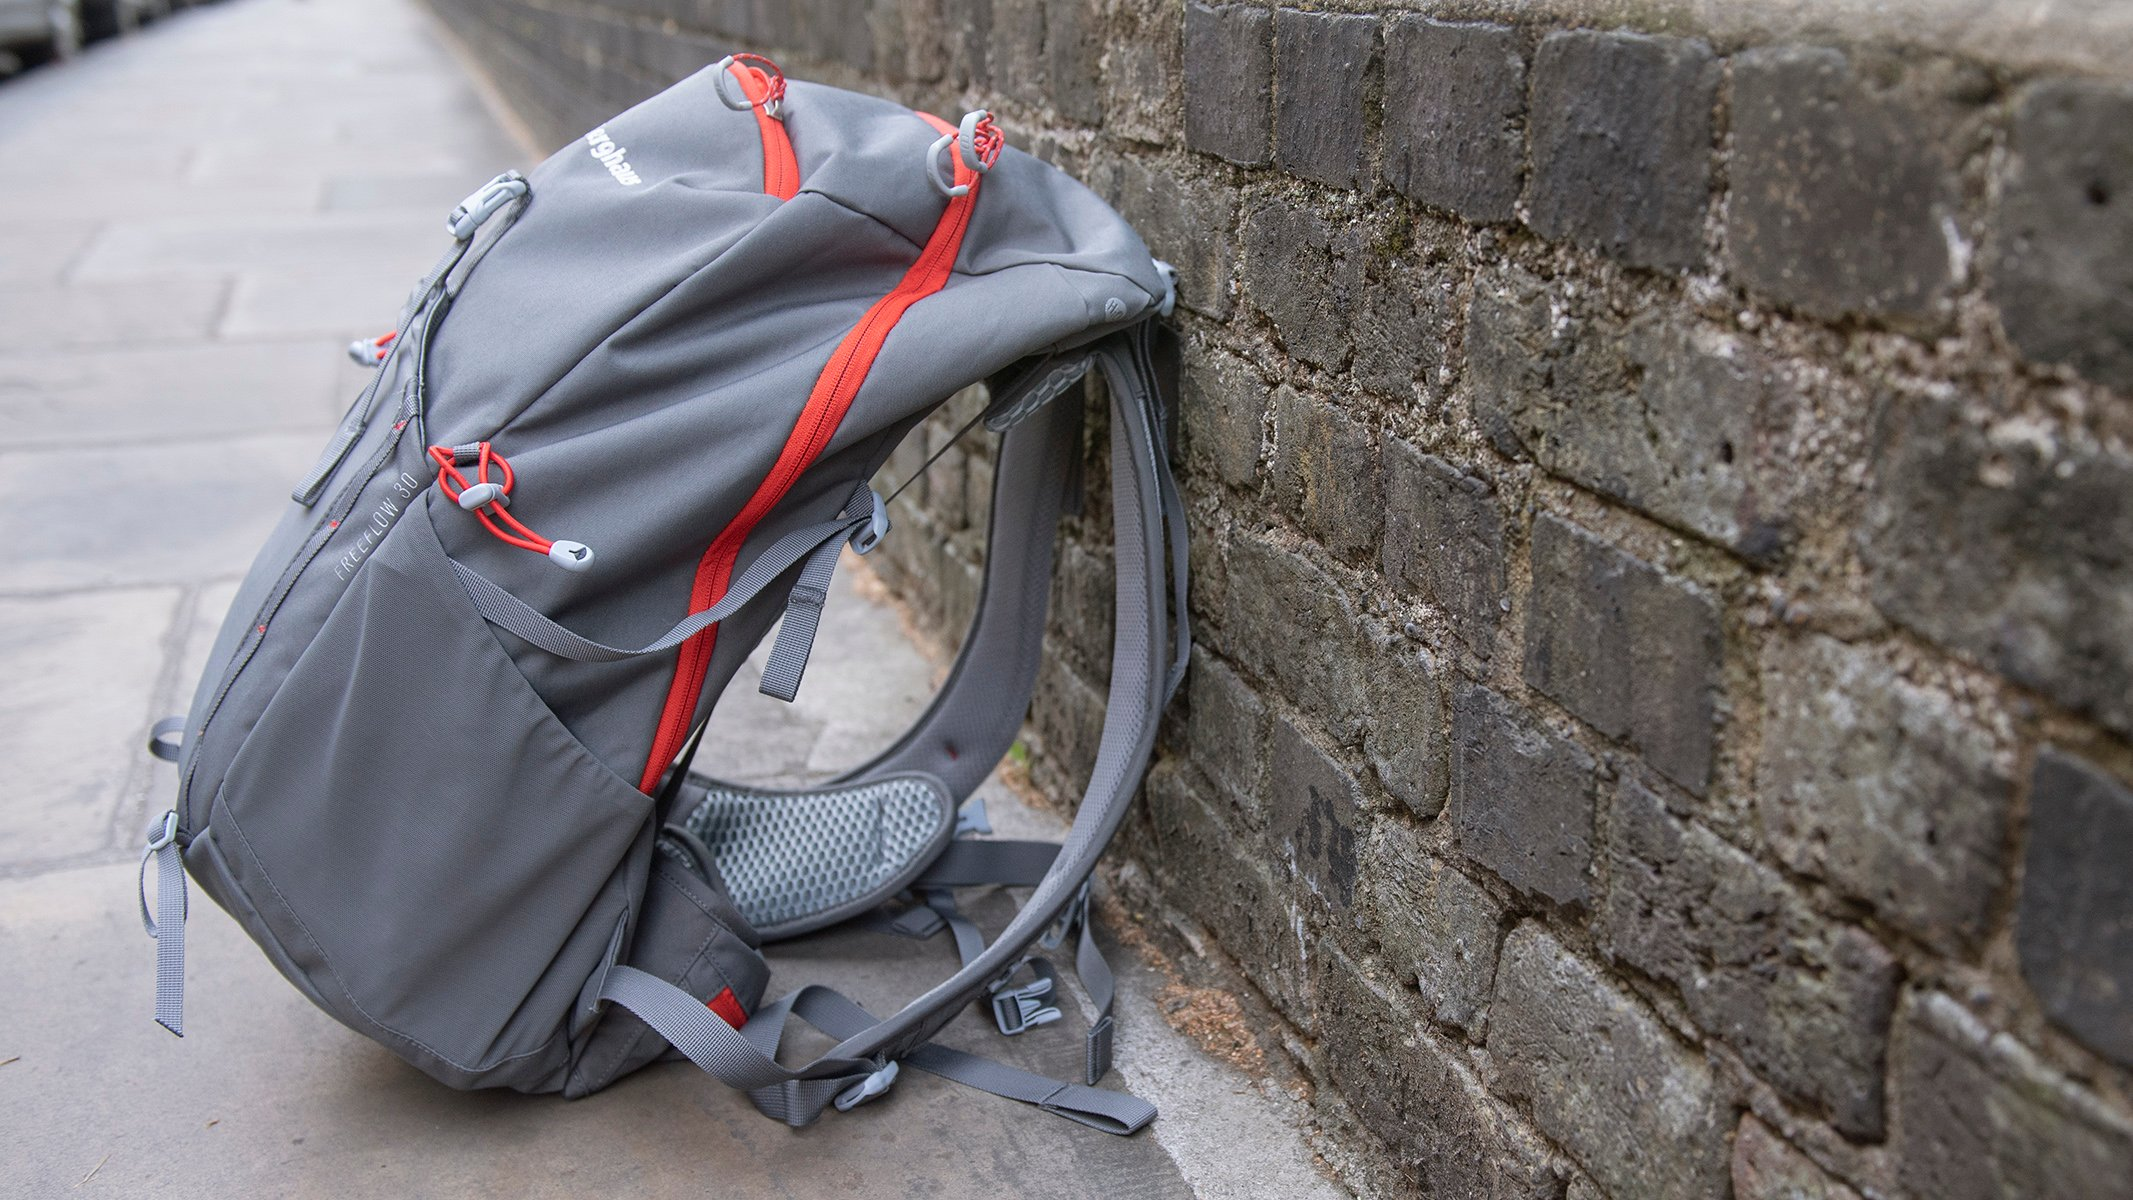 ec4c0bde08 You ll struggle to find a more practical daysack than the Berghaus Freeflow  30 at this price. Its standout feature is undoubtedly its curved back and  ...